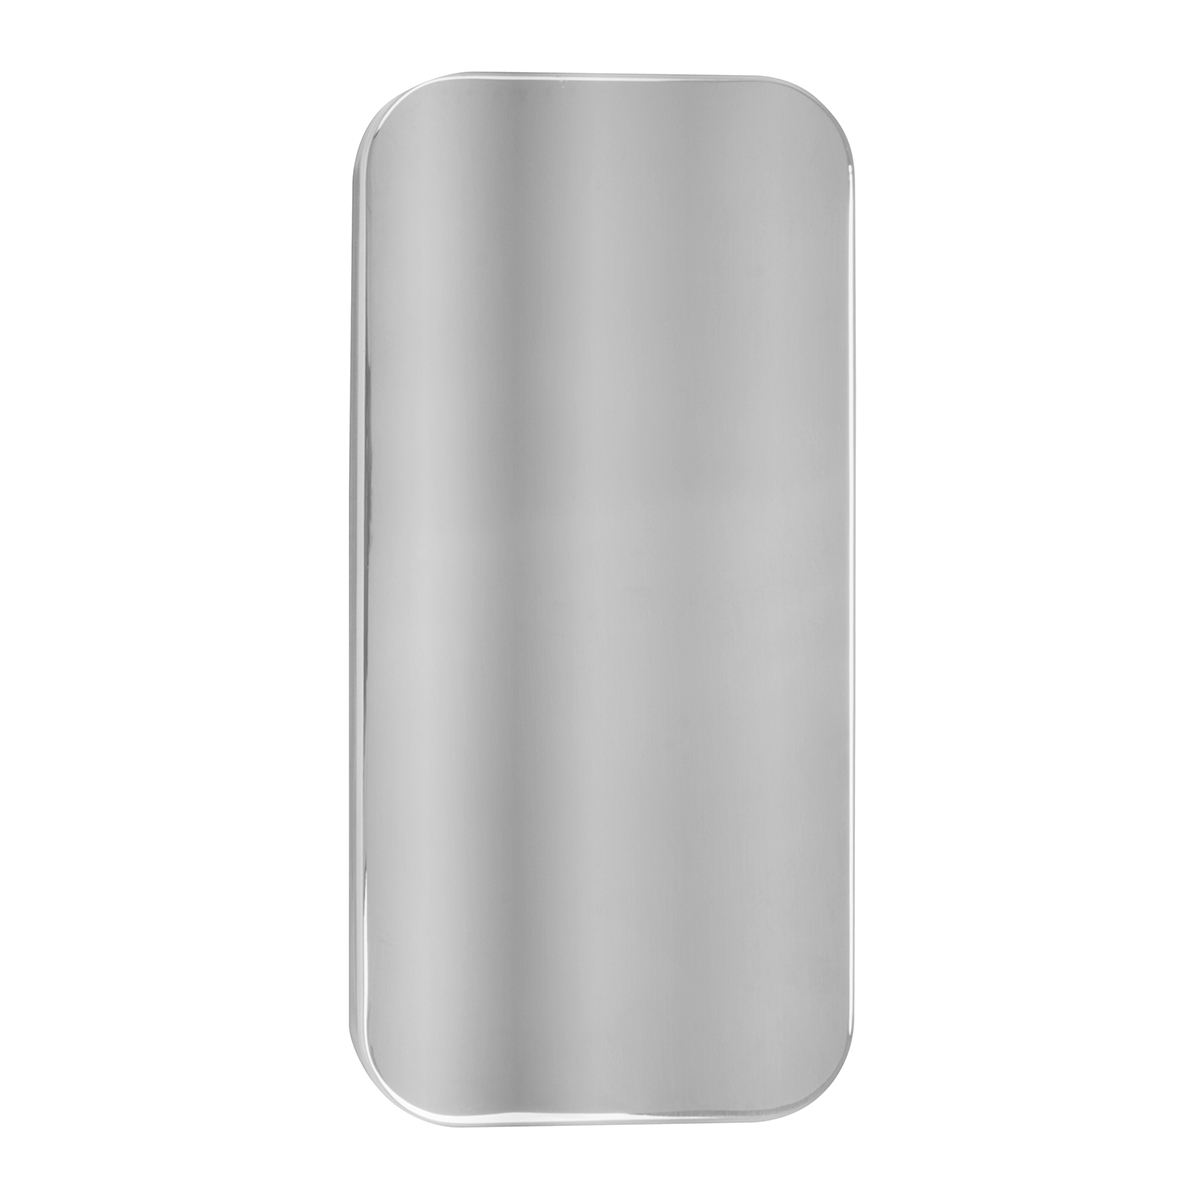 97660 Volvo Stainless Steel Exterior Sleeper Vent Cover